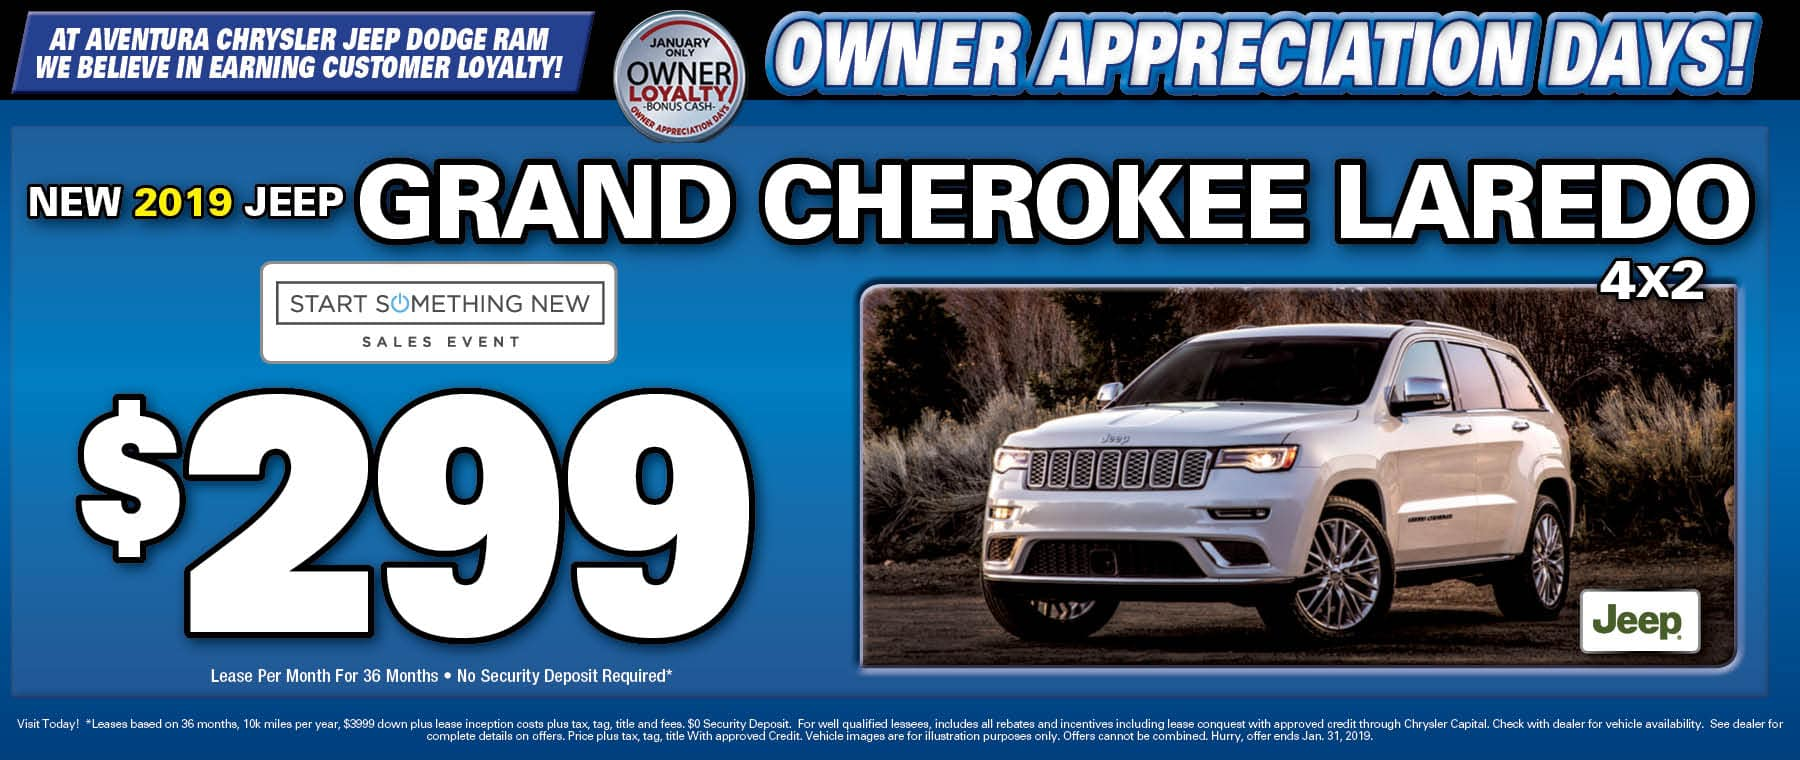 2019 Jeep Grand Cherokee Laredo! - Aventura Chrysler Jeep Dodge RAM!